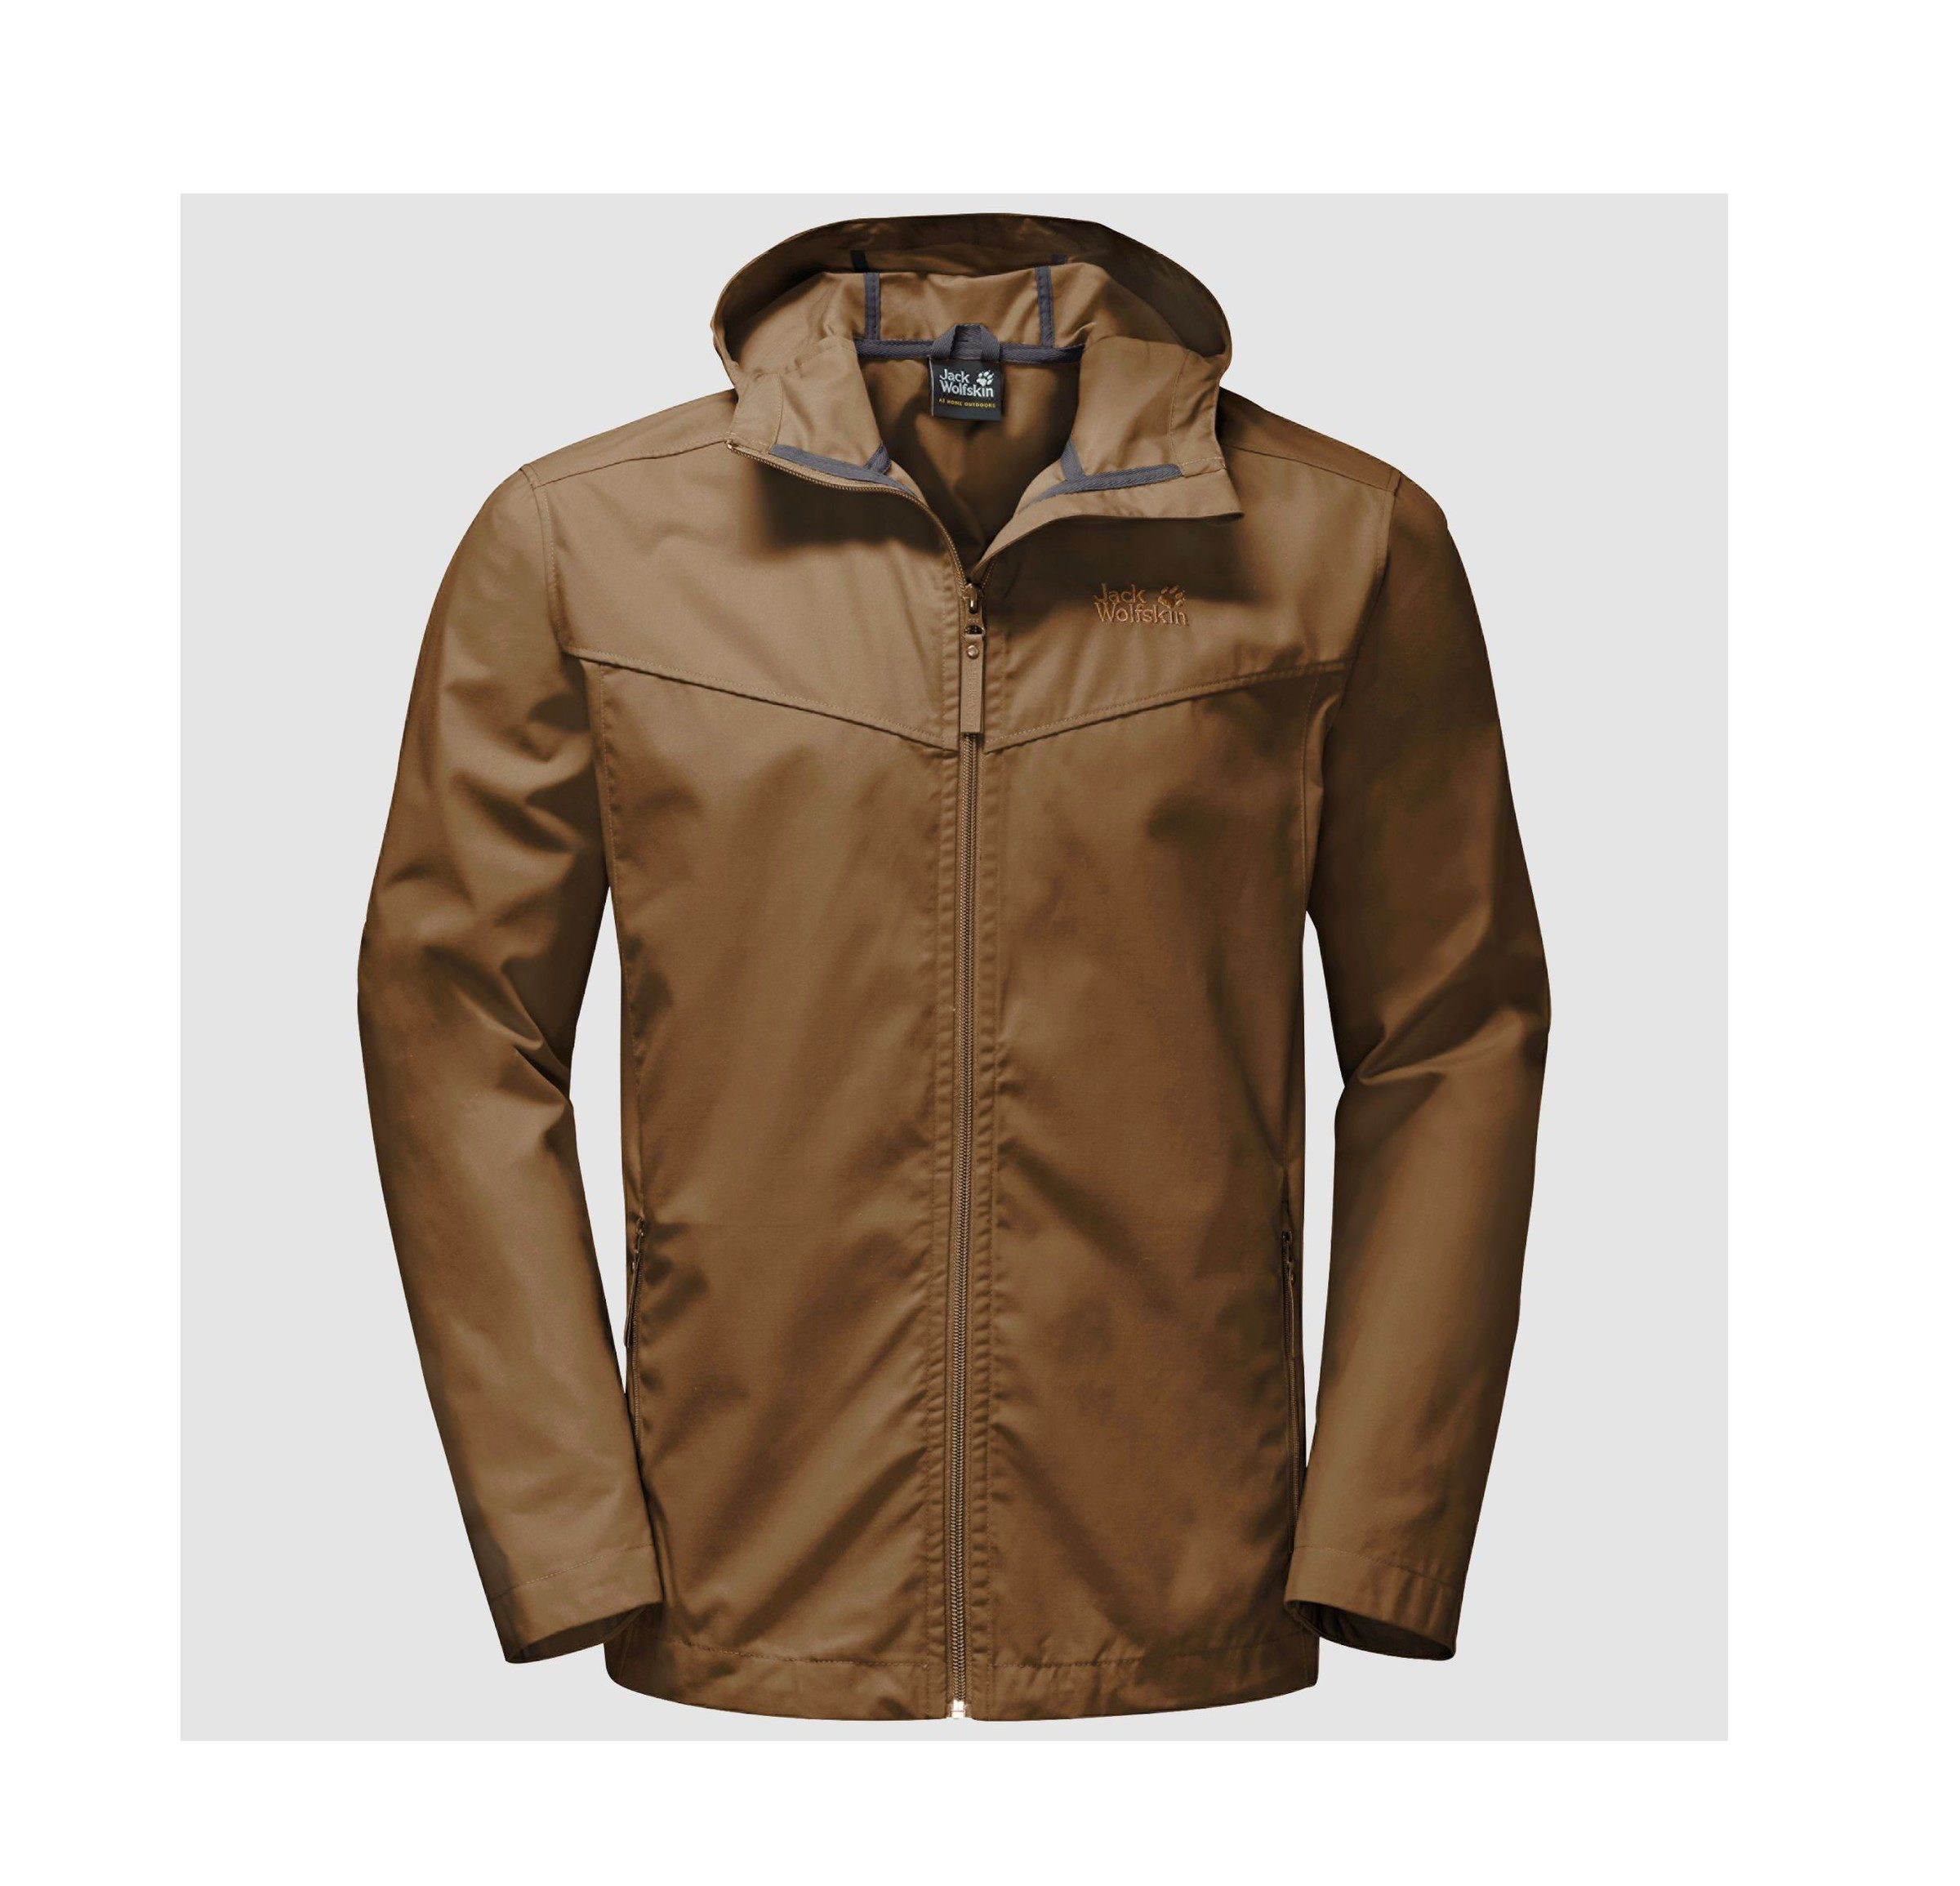 Jack Wolfskin Mens Amber Road Jacket - Deer Brown